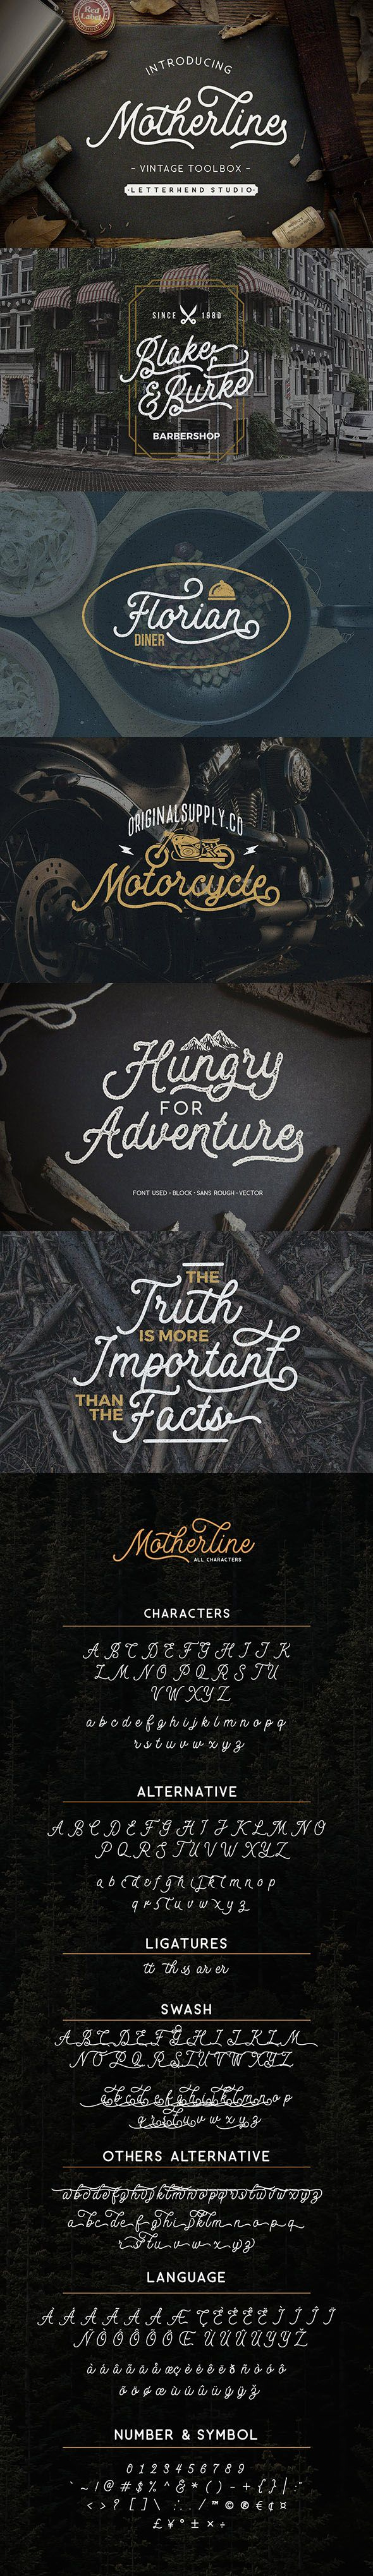 Motherline Vintage Font — TrueType TTF #adventure #wordmark • Download ➝ https://graphicriver.net/item/motherline-vintage-font/19460056?ref=pxcr